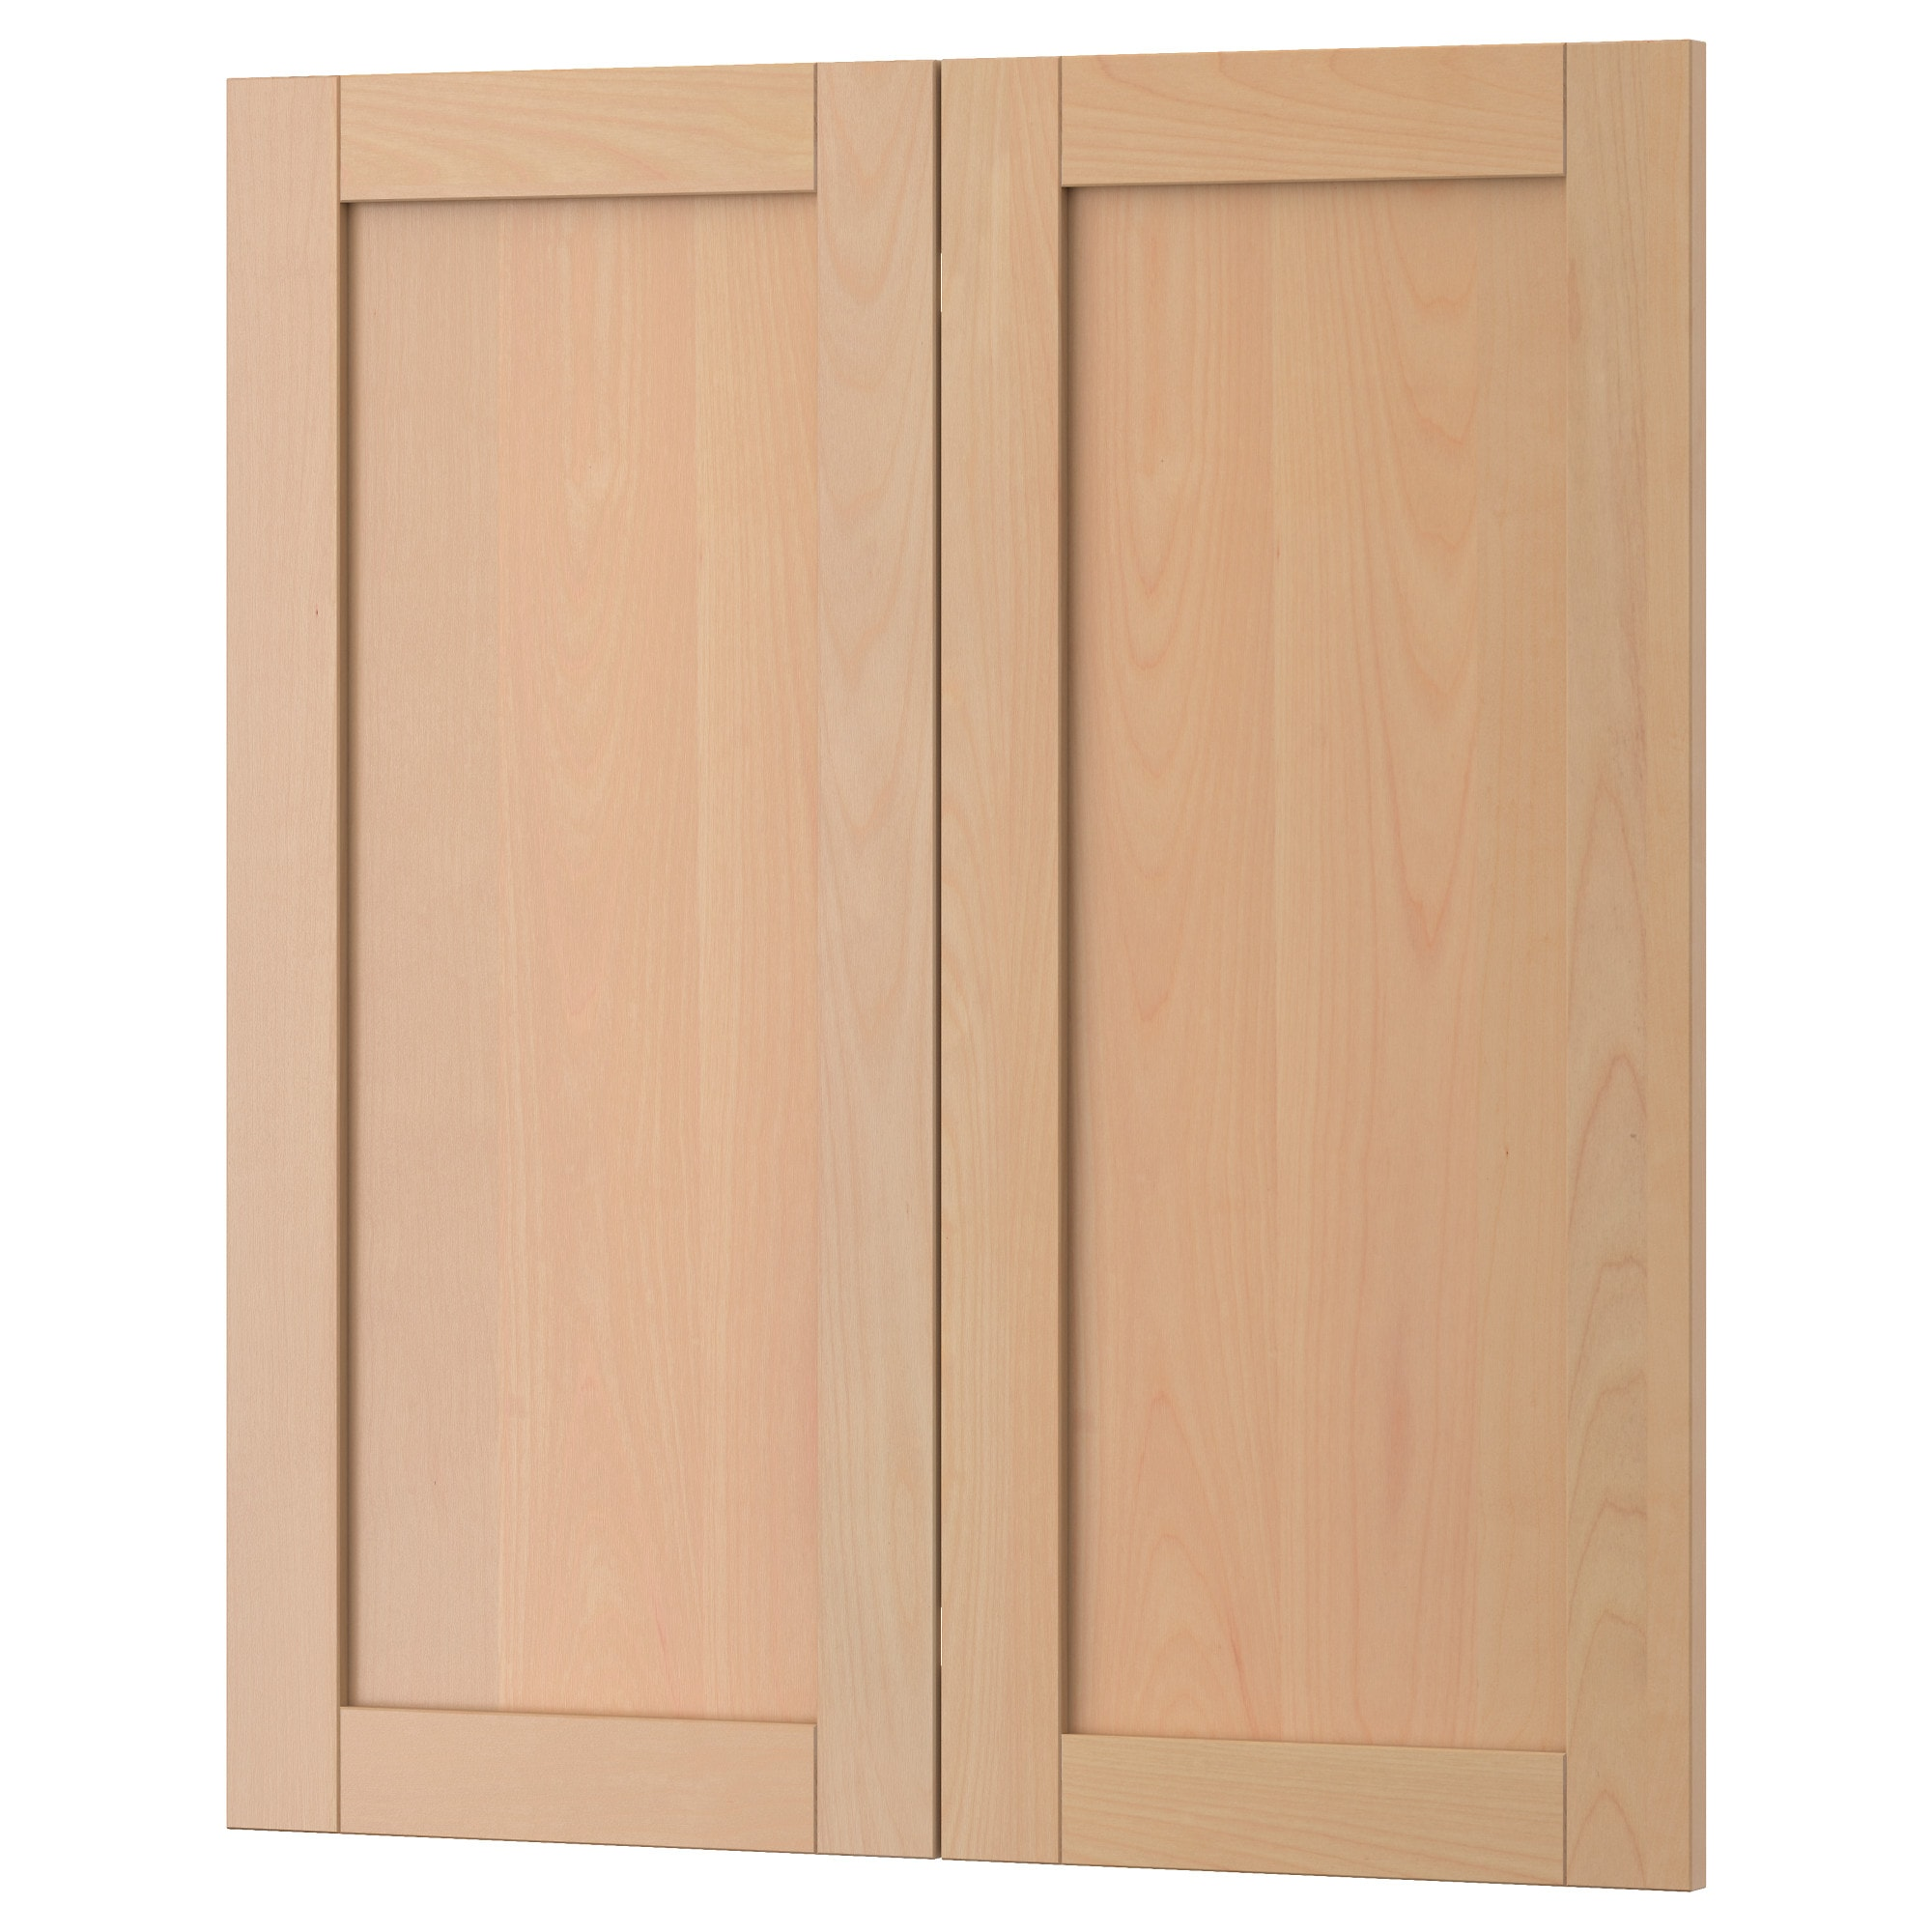 . BJ RKET 2 p door corner base cabinet set   IKEA